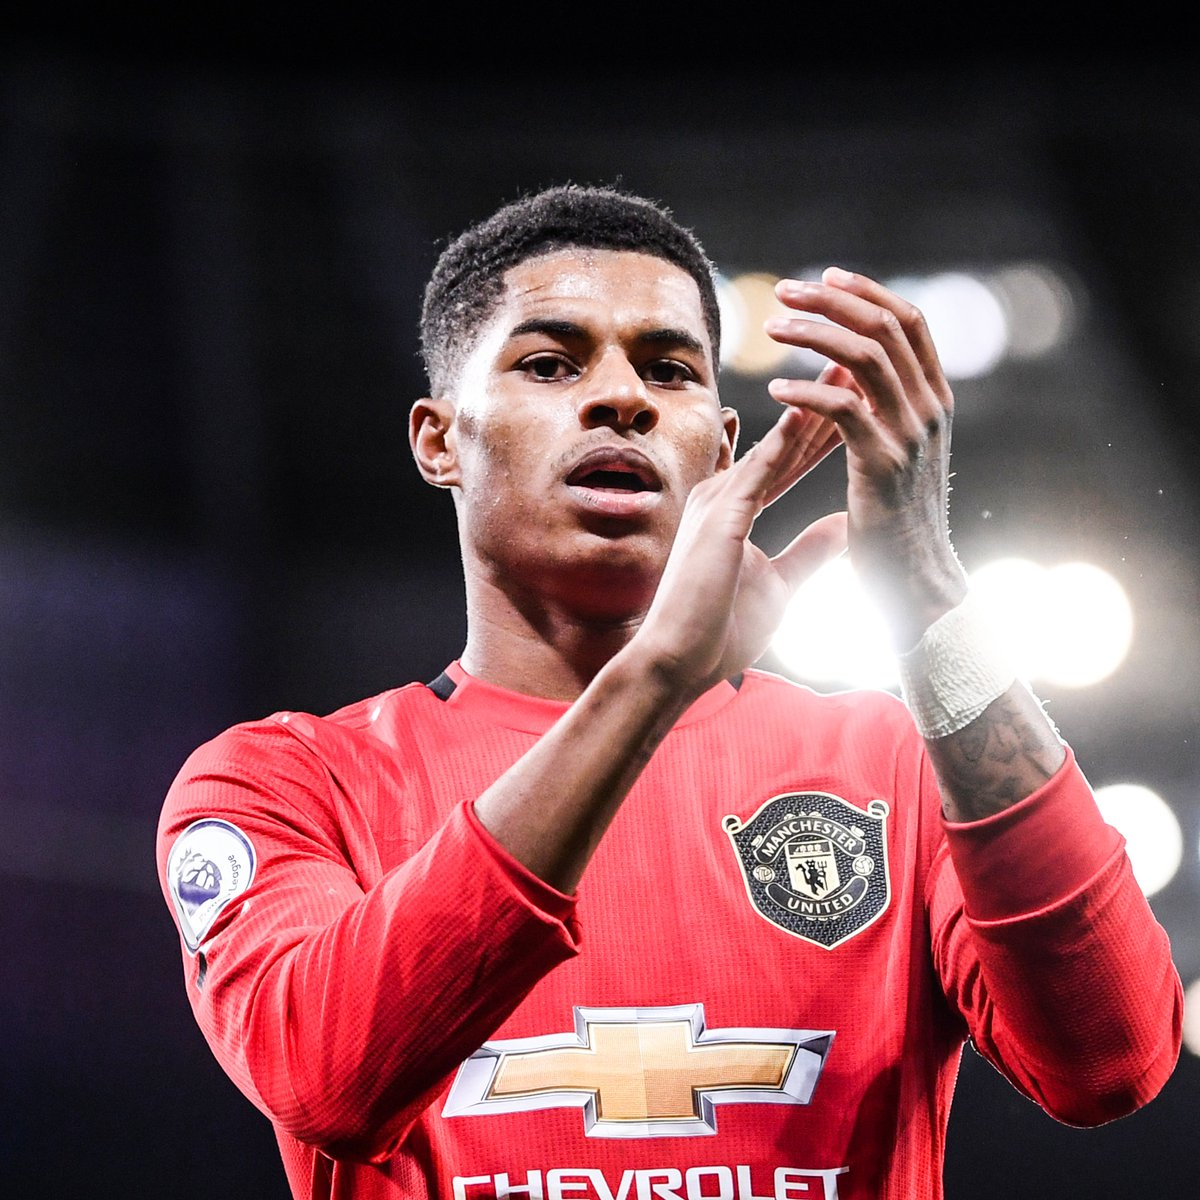 """Marcus Rashford will become the youngest-ever recipient of an honorary doctorate from the University of Manchester after his campaign against child poverty and """"outstanding sporting achievements"""" 👏 https://t.co/68U7AUKNnK"""